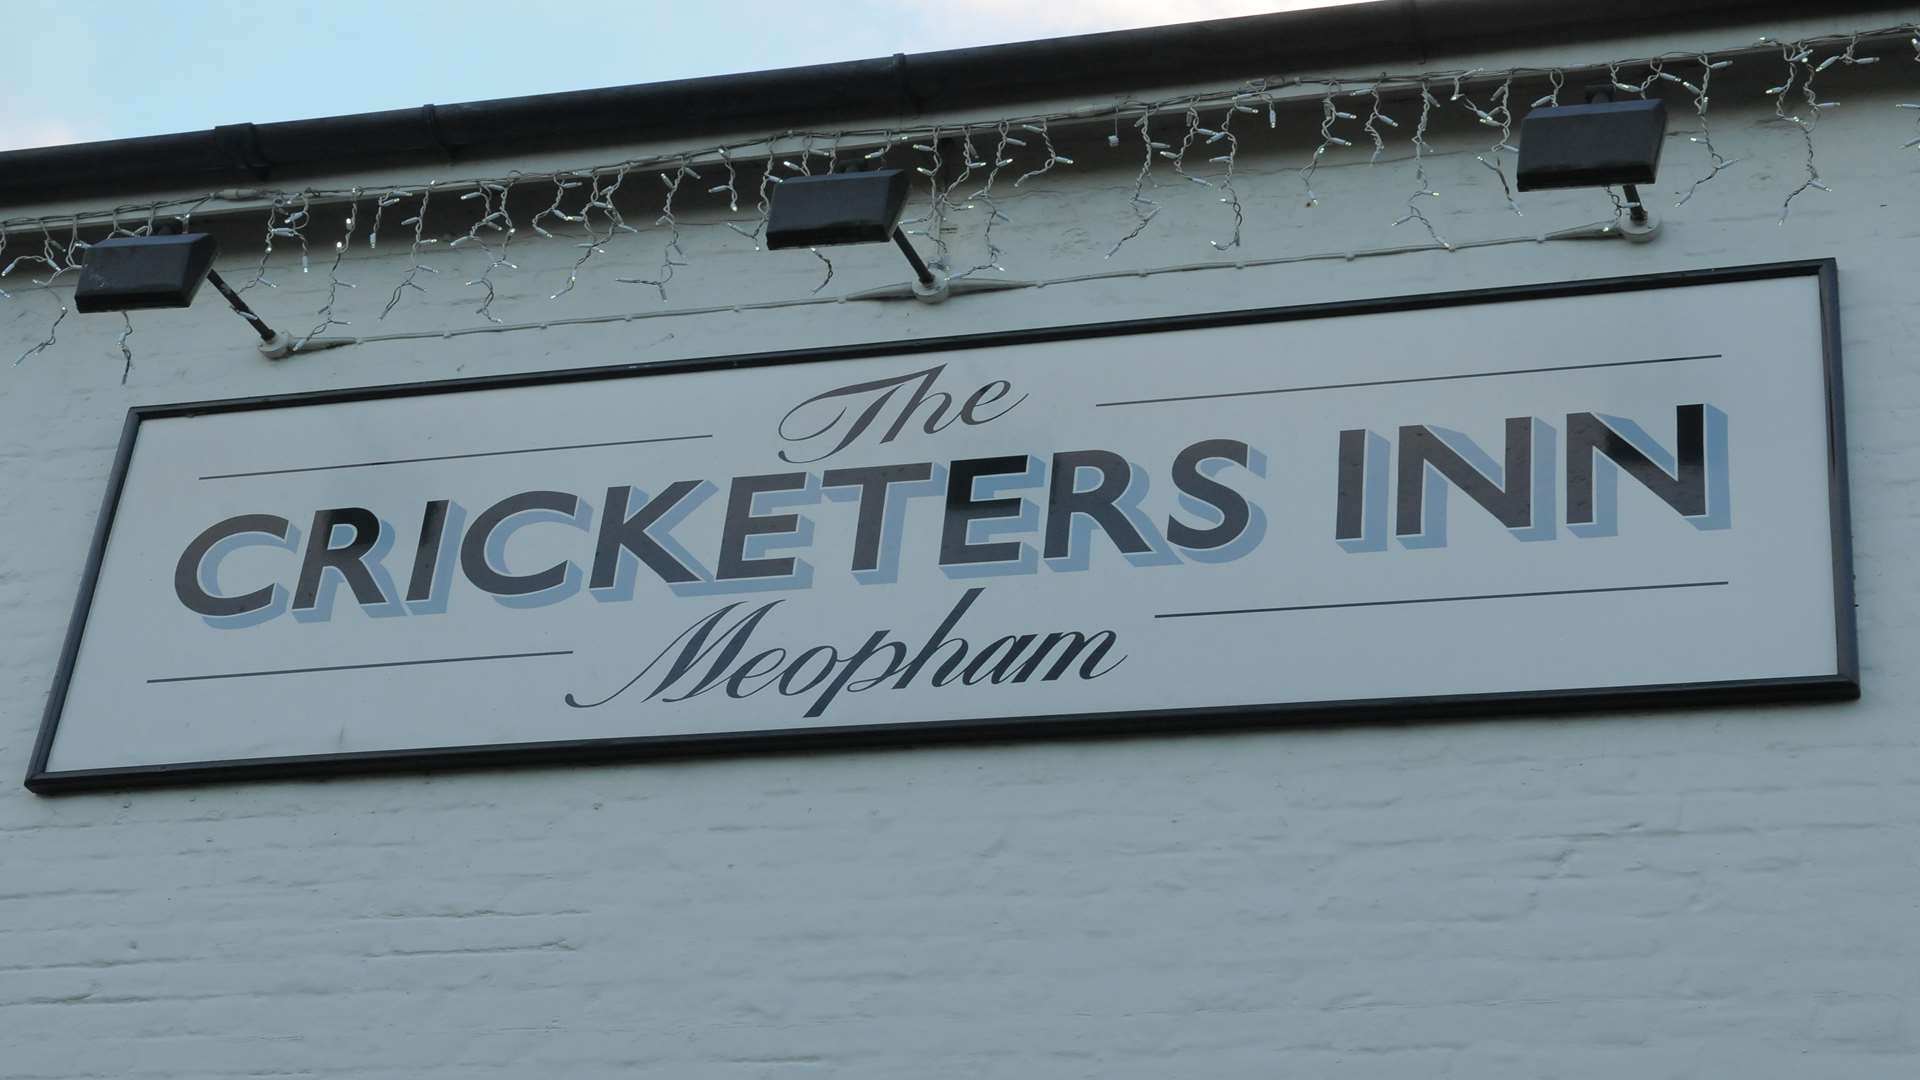 The Cricketers Inn in Meopham is a Whiting & Hammond pub